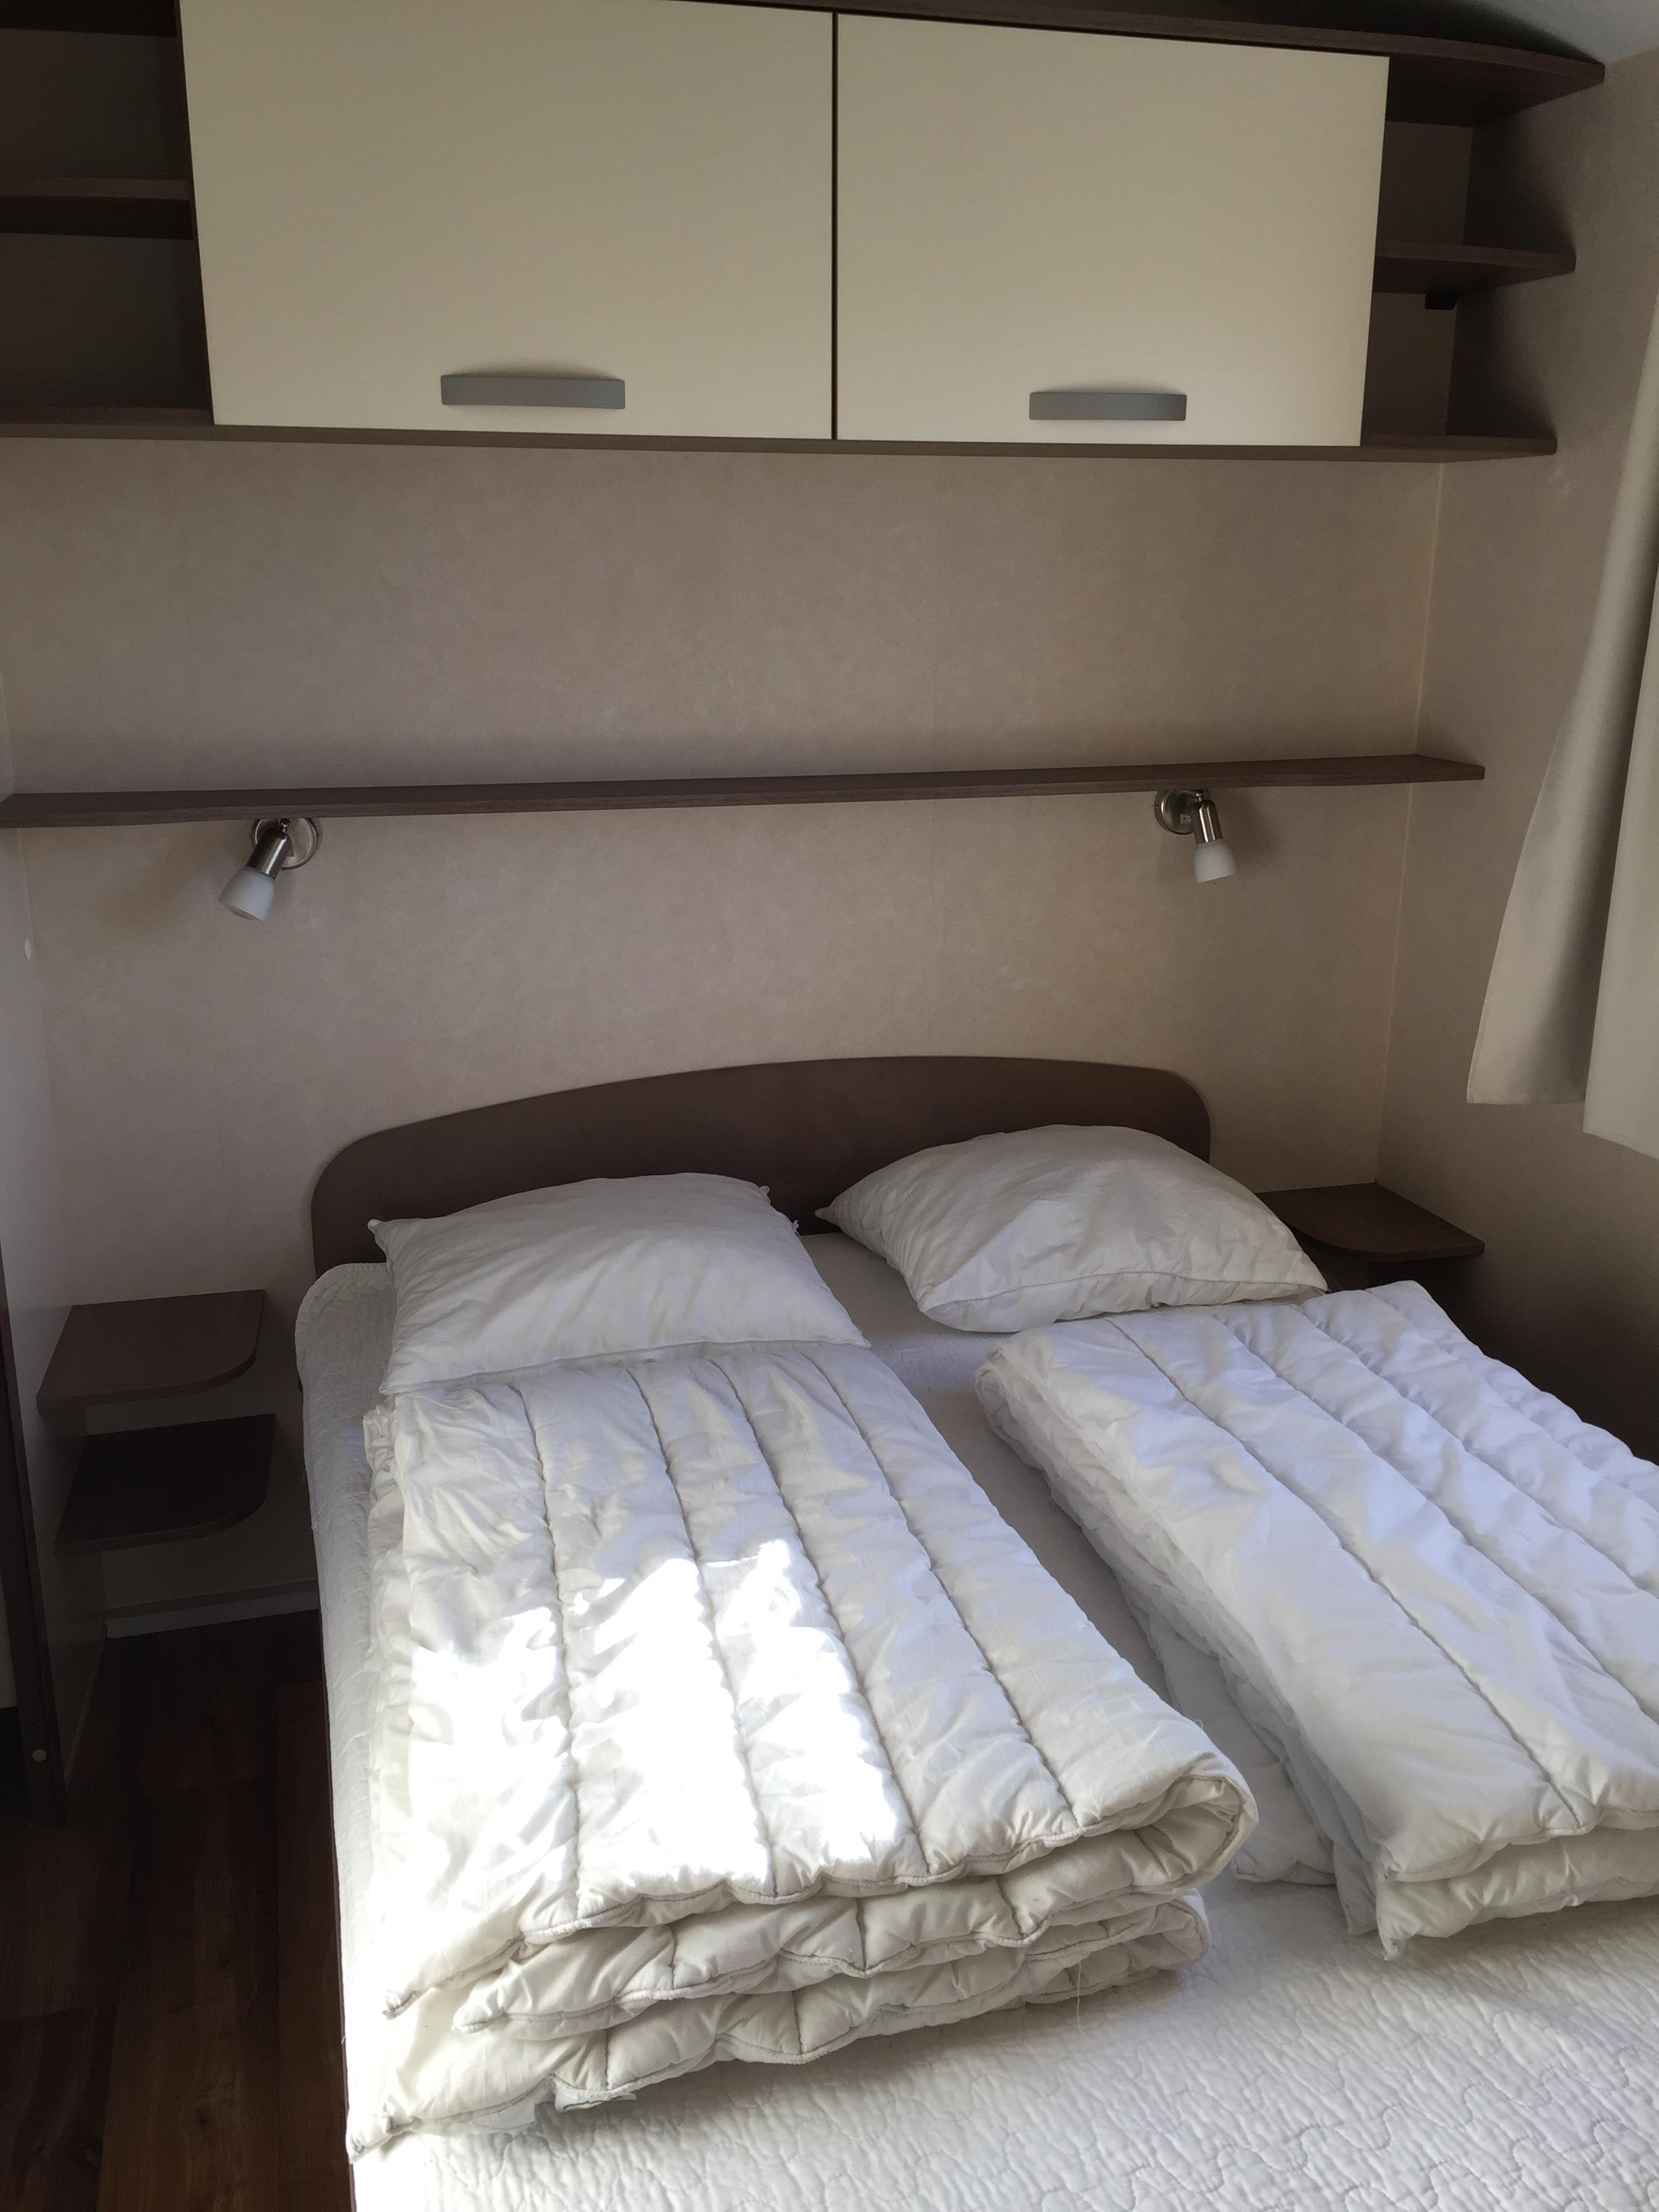 Vorbasse camping   mobil home   freedom   25 m² max. 5 personer ...